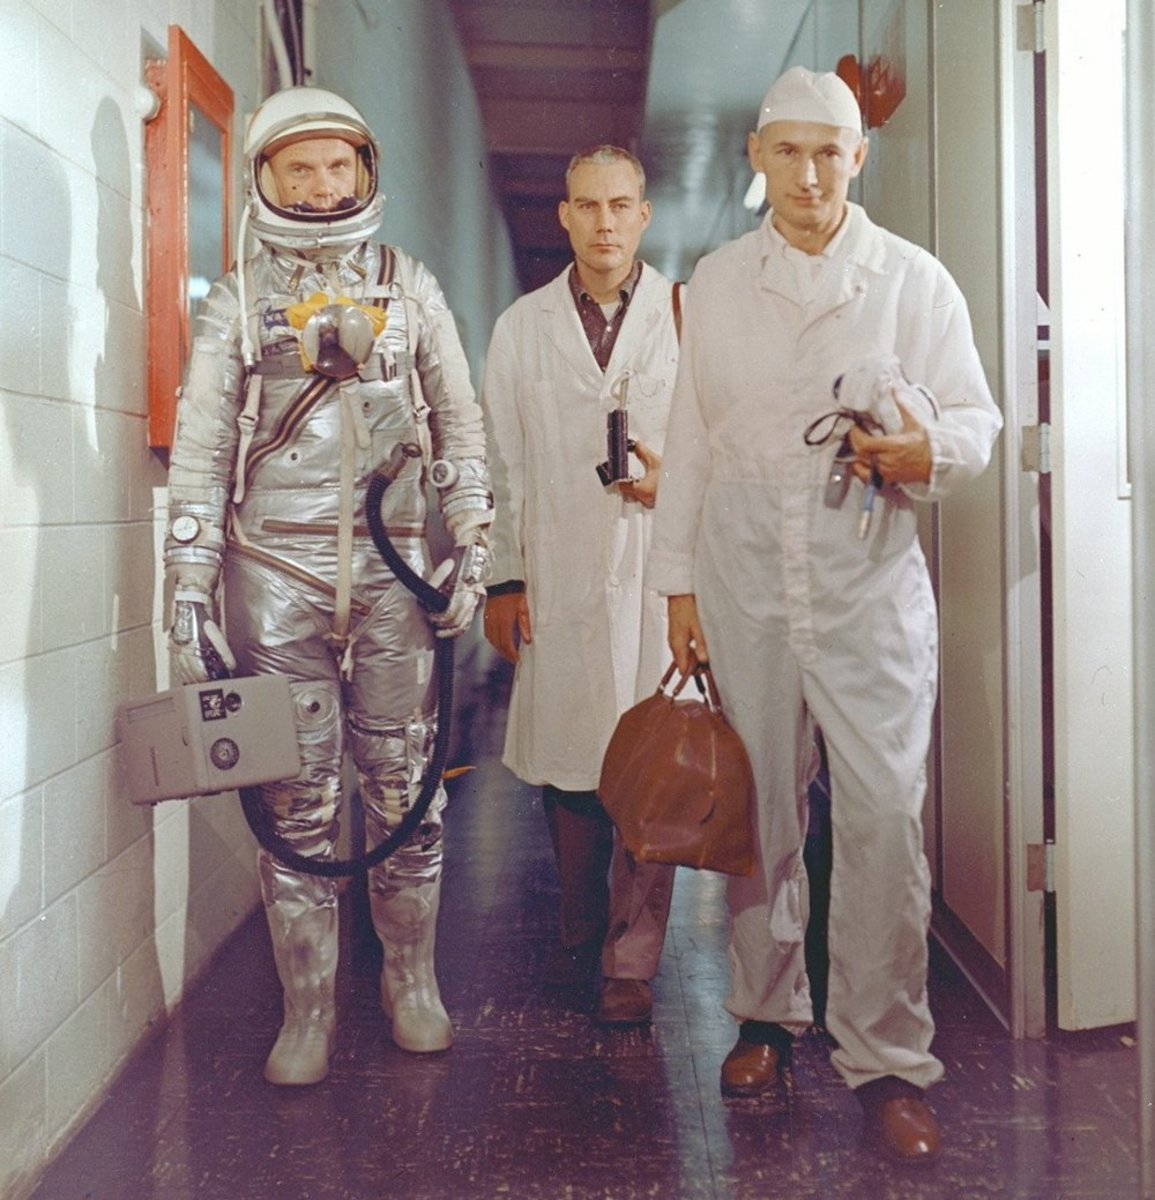 John Glenn, suited-up pre-flight, is seen carrying the portable ventilation unit. Photo courtesy of NASA.